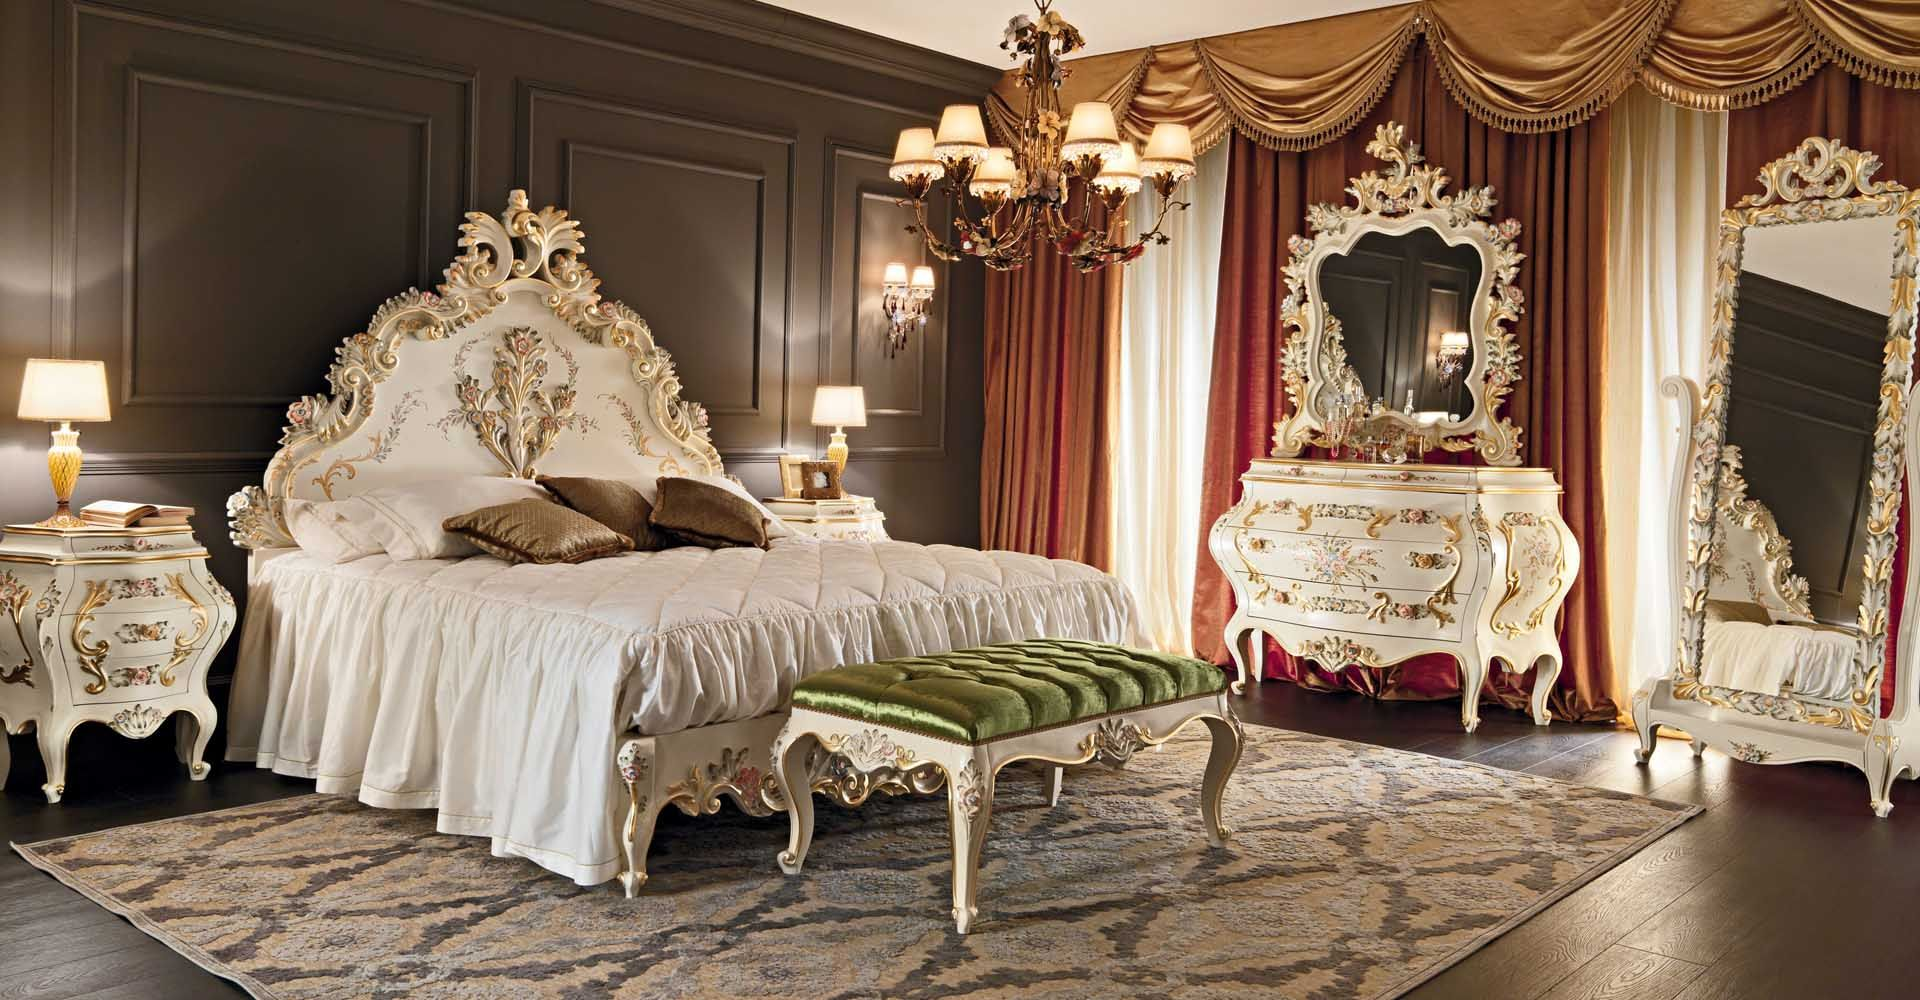 Attractive victorian bedroom furniture image of: luxury victorian furniture styles ggvifcf